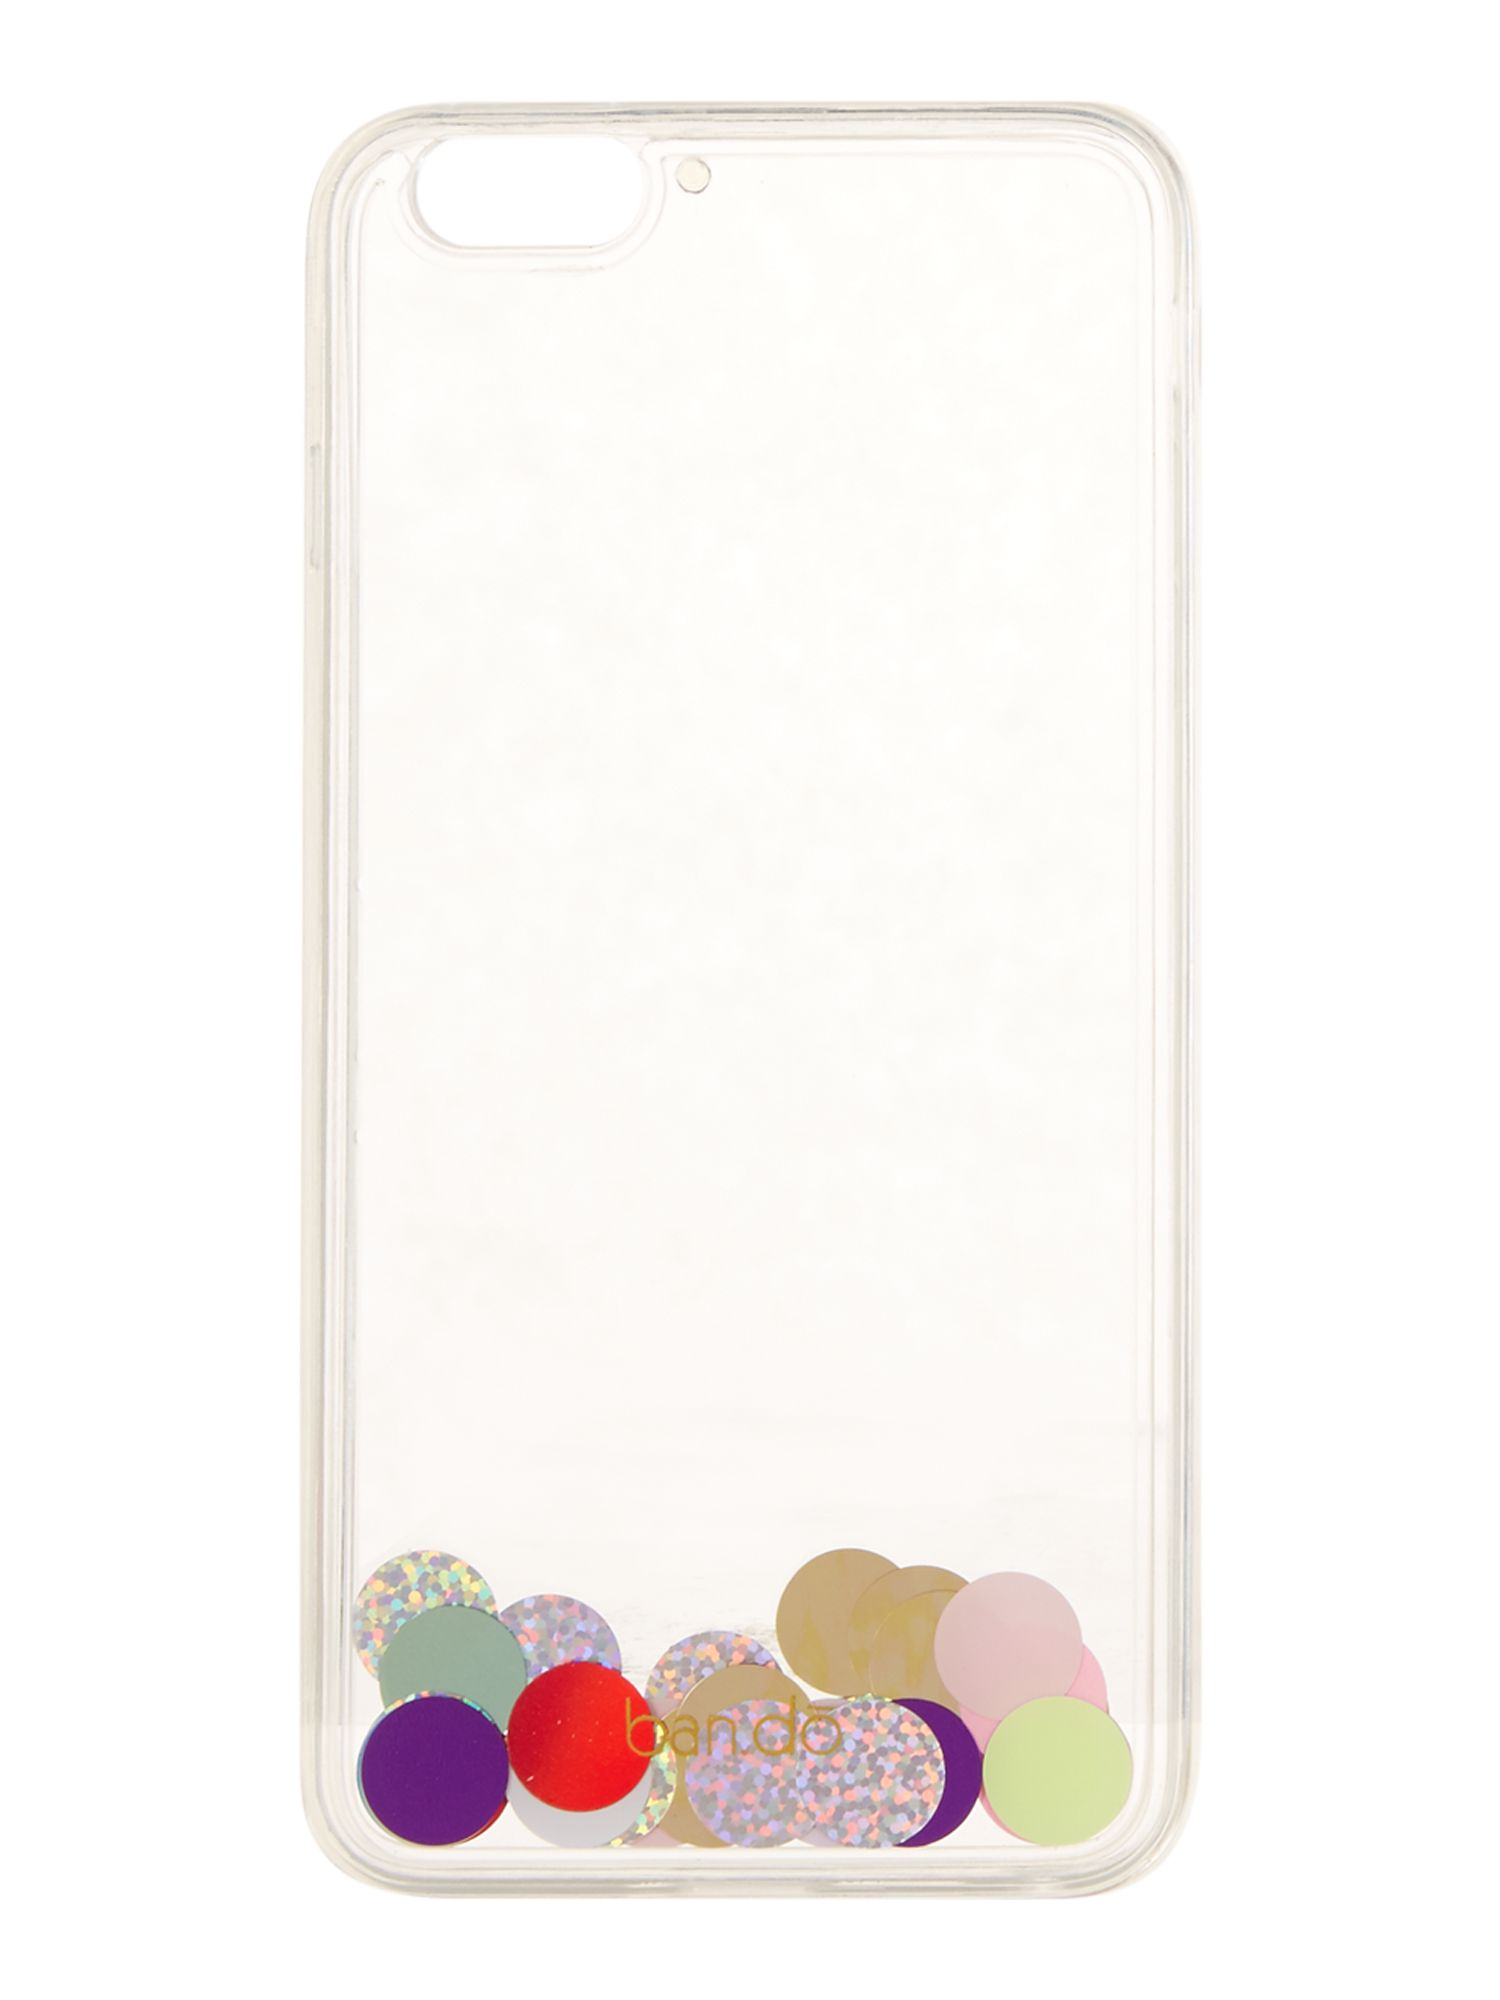 Ban.do Europop iphone 6+, floating confetti, Multi-Coloured